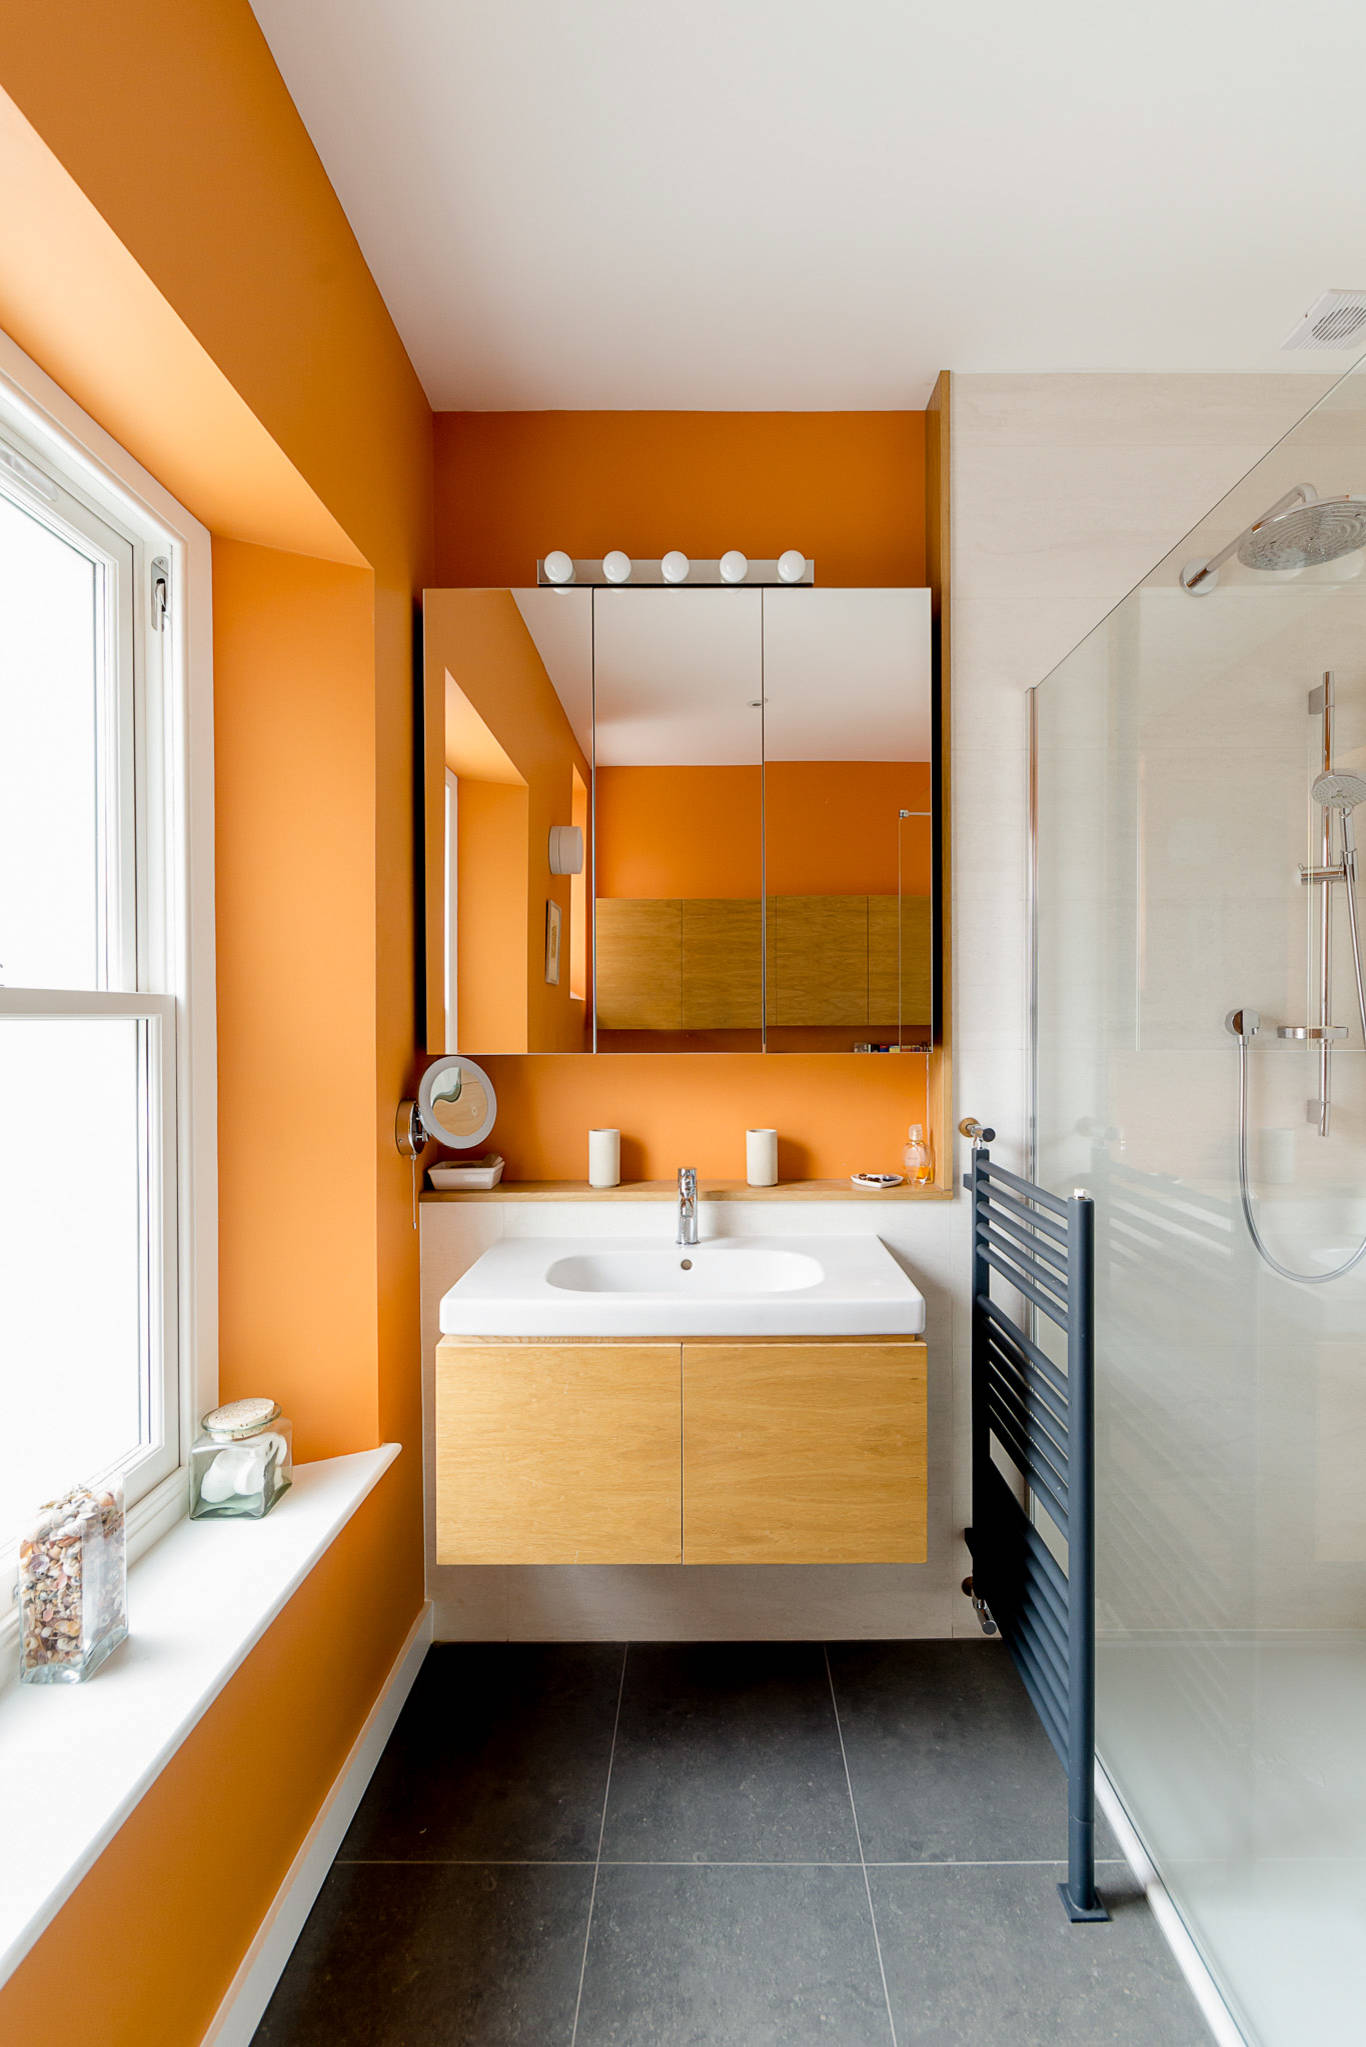 75 Beautiful Bathroom With Orange Walls Pictures Ideas April 2021 Houzz